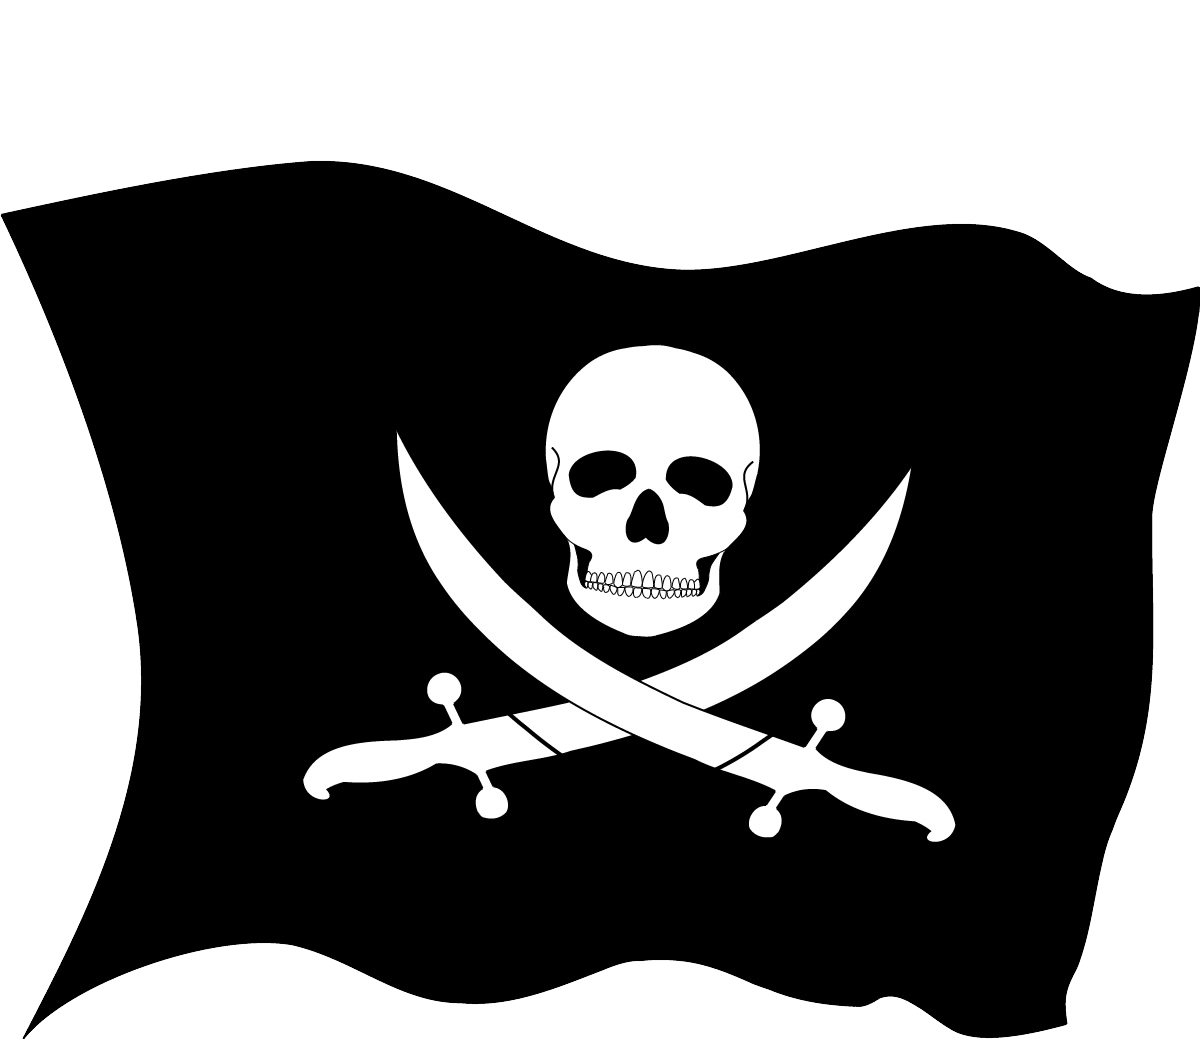 Pirate group png. Criminal clipart capture the flag